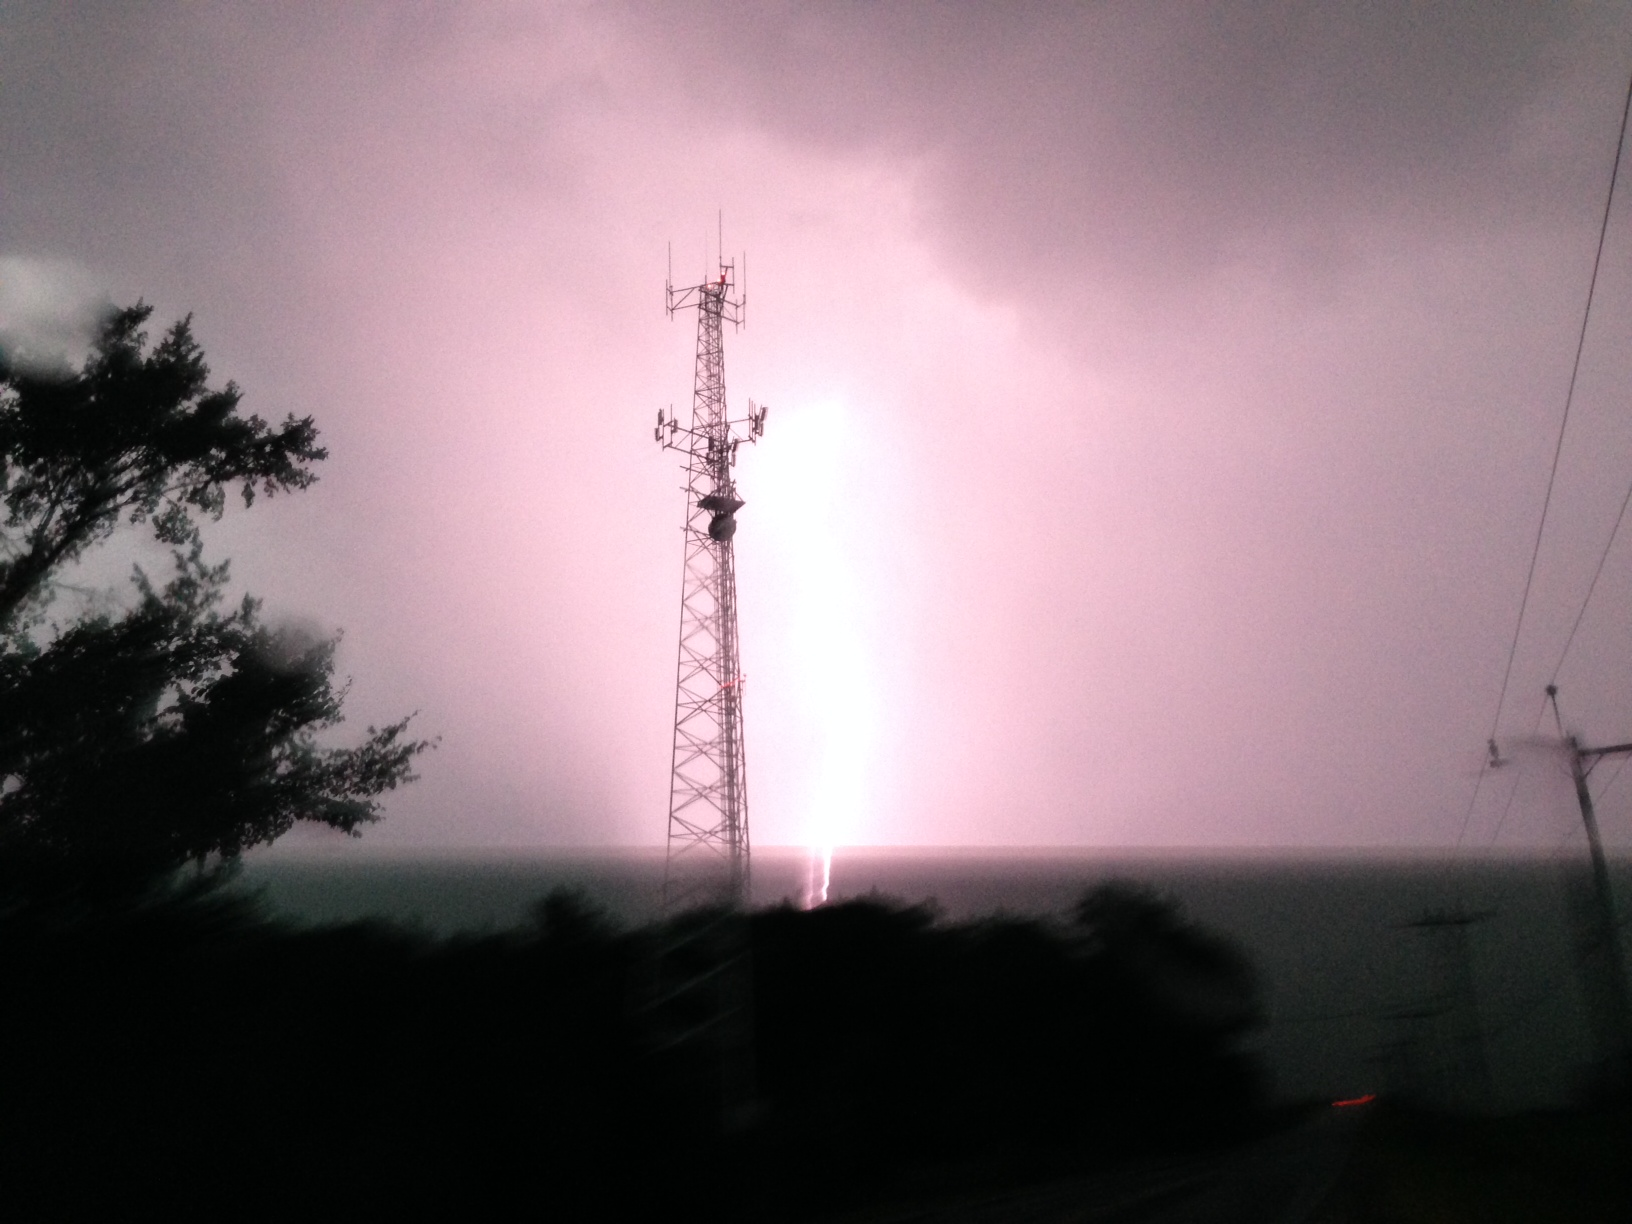 Storms with intense lightning cause widespread power outages in Sarnia-Lambton Sept 5, 2014